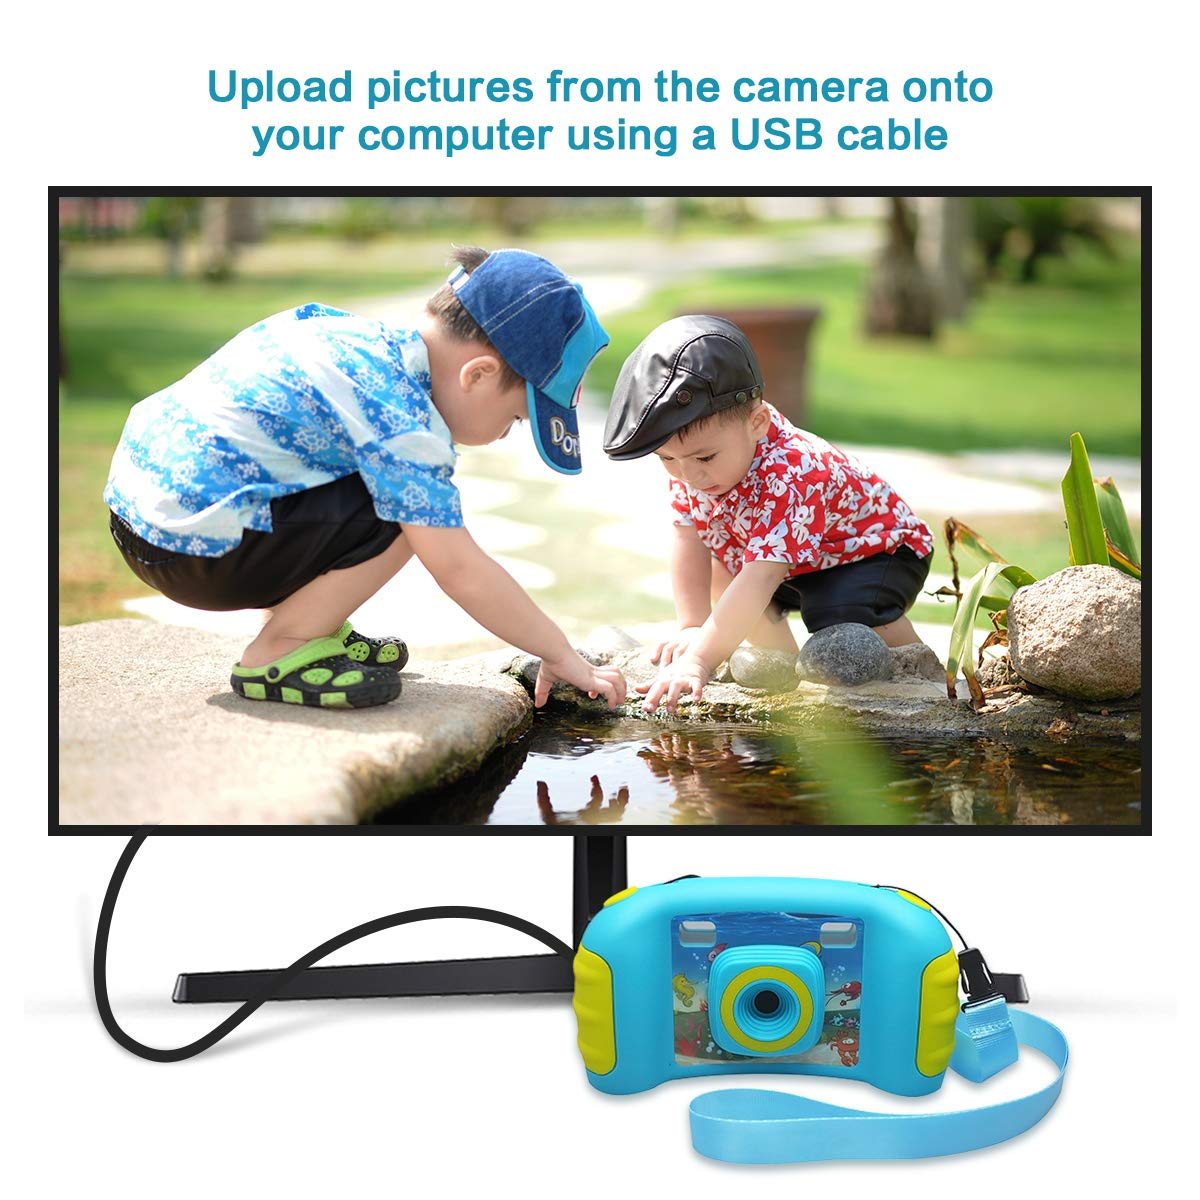 HankeRobotics Kids Digital Camera, with 8GB Micro SD Card, Kids Digital Photo/Video Camera with 4X Zoom, 1.7 Inch Screen Screen Action Camera Camcorder for Children Boys Girls Birthday Gift,Blue by HankeRobotics (Image #7)